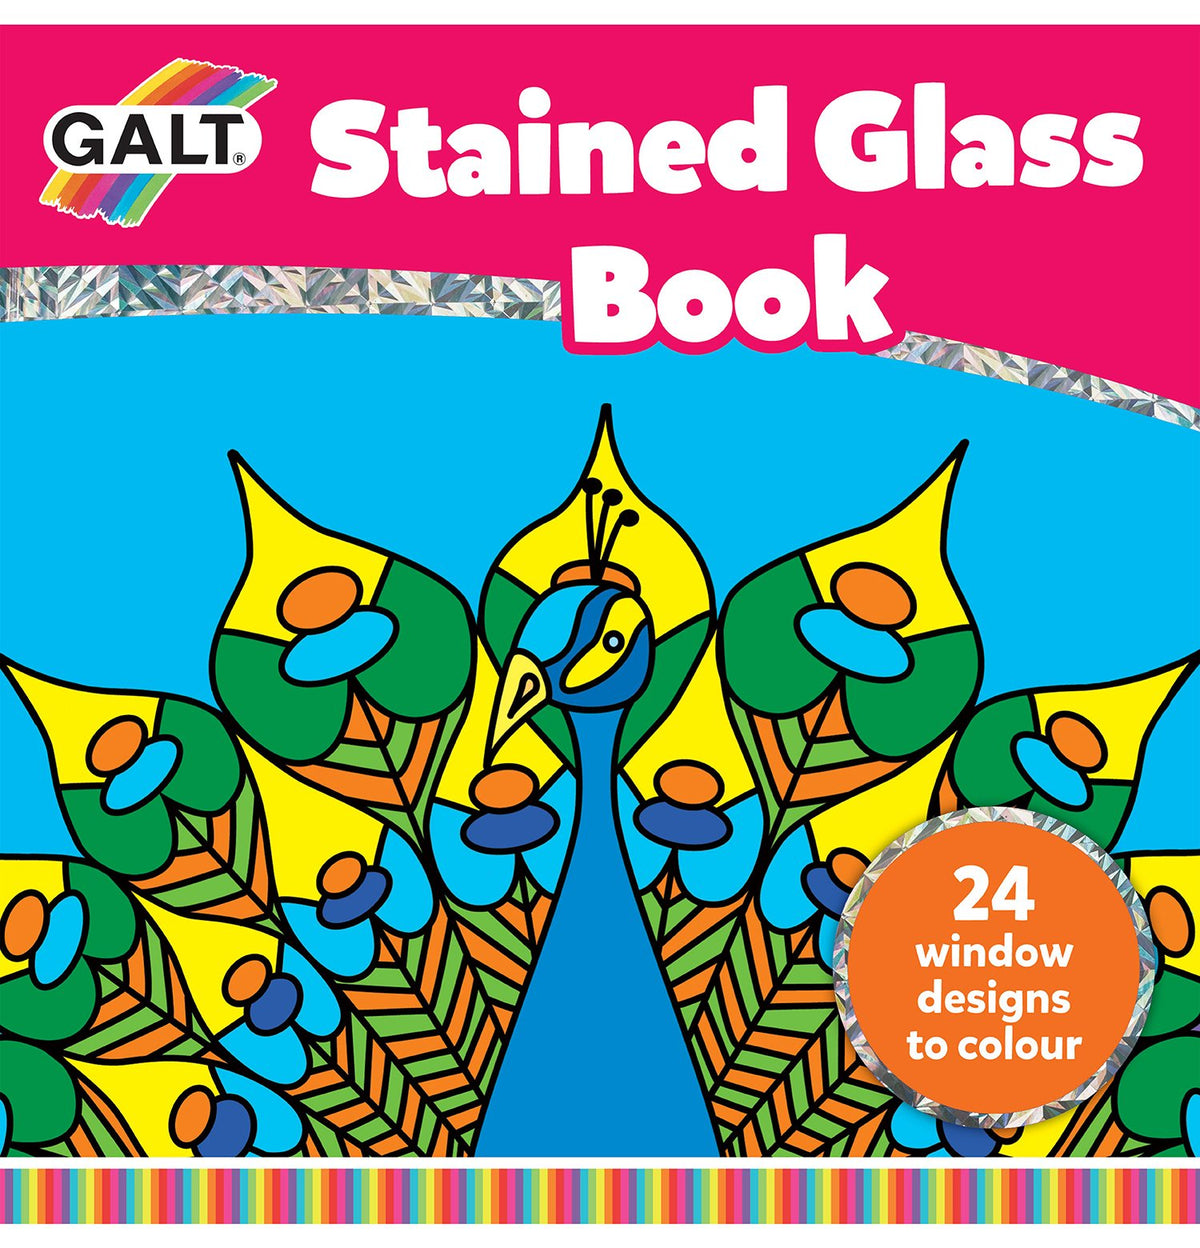 Stained Glass Book - Galt